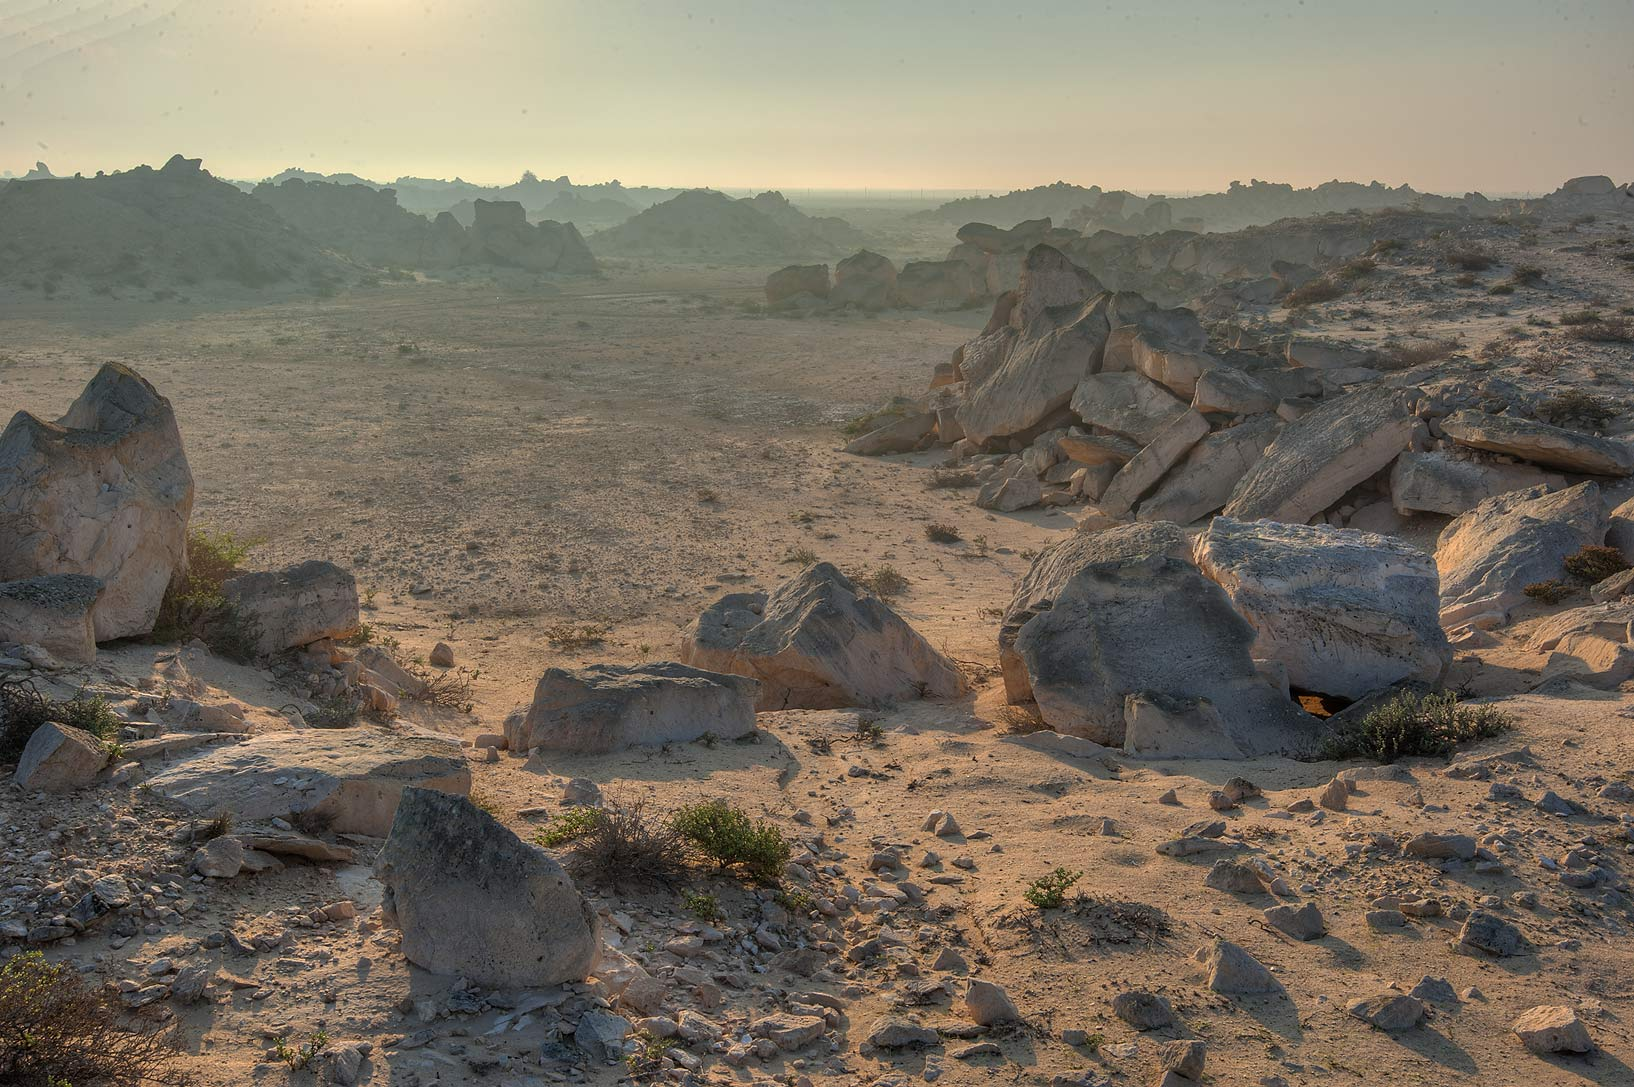 Sunrise over a stone quarry at Jabal Al Jassasiya site, on north-eastern coast. Qatar